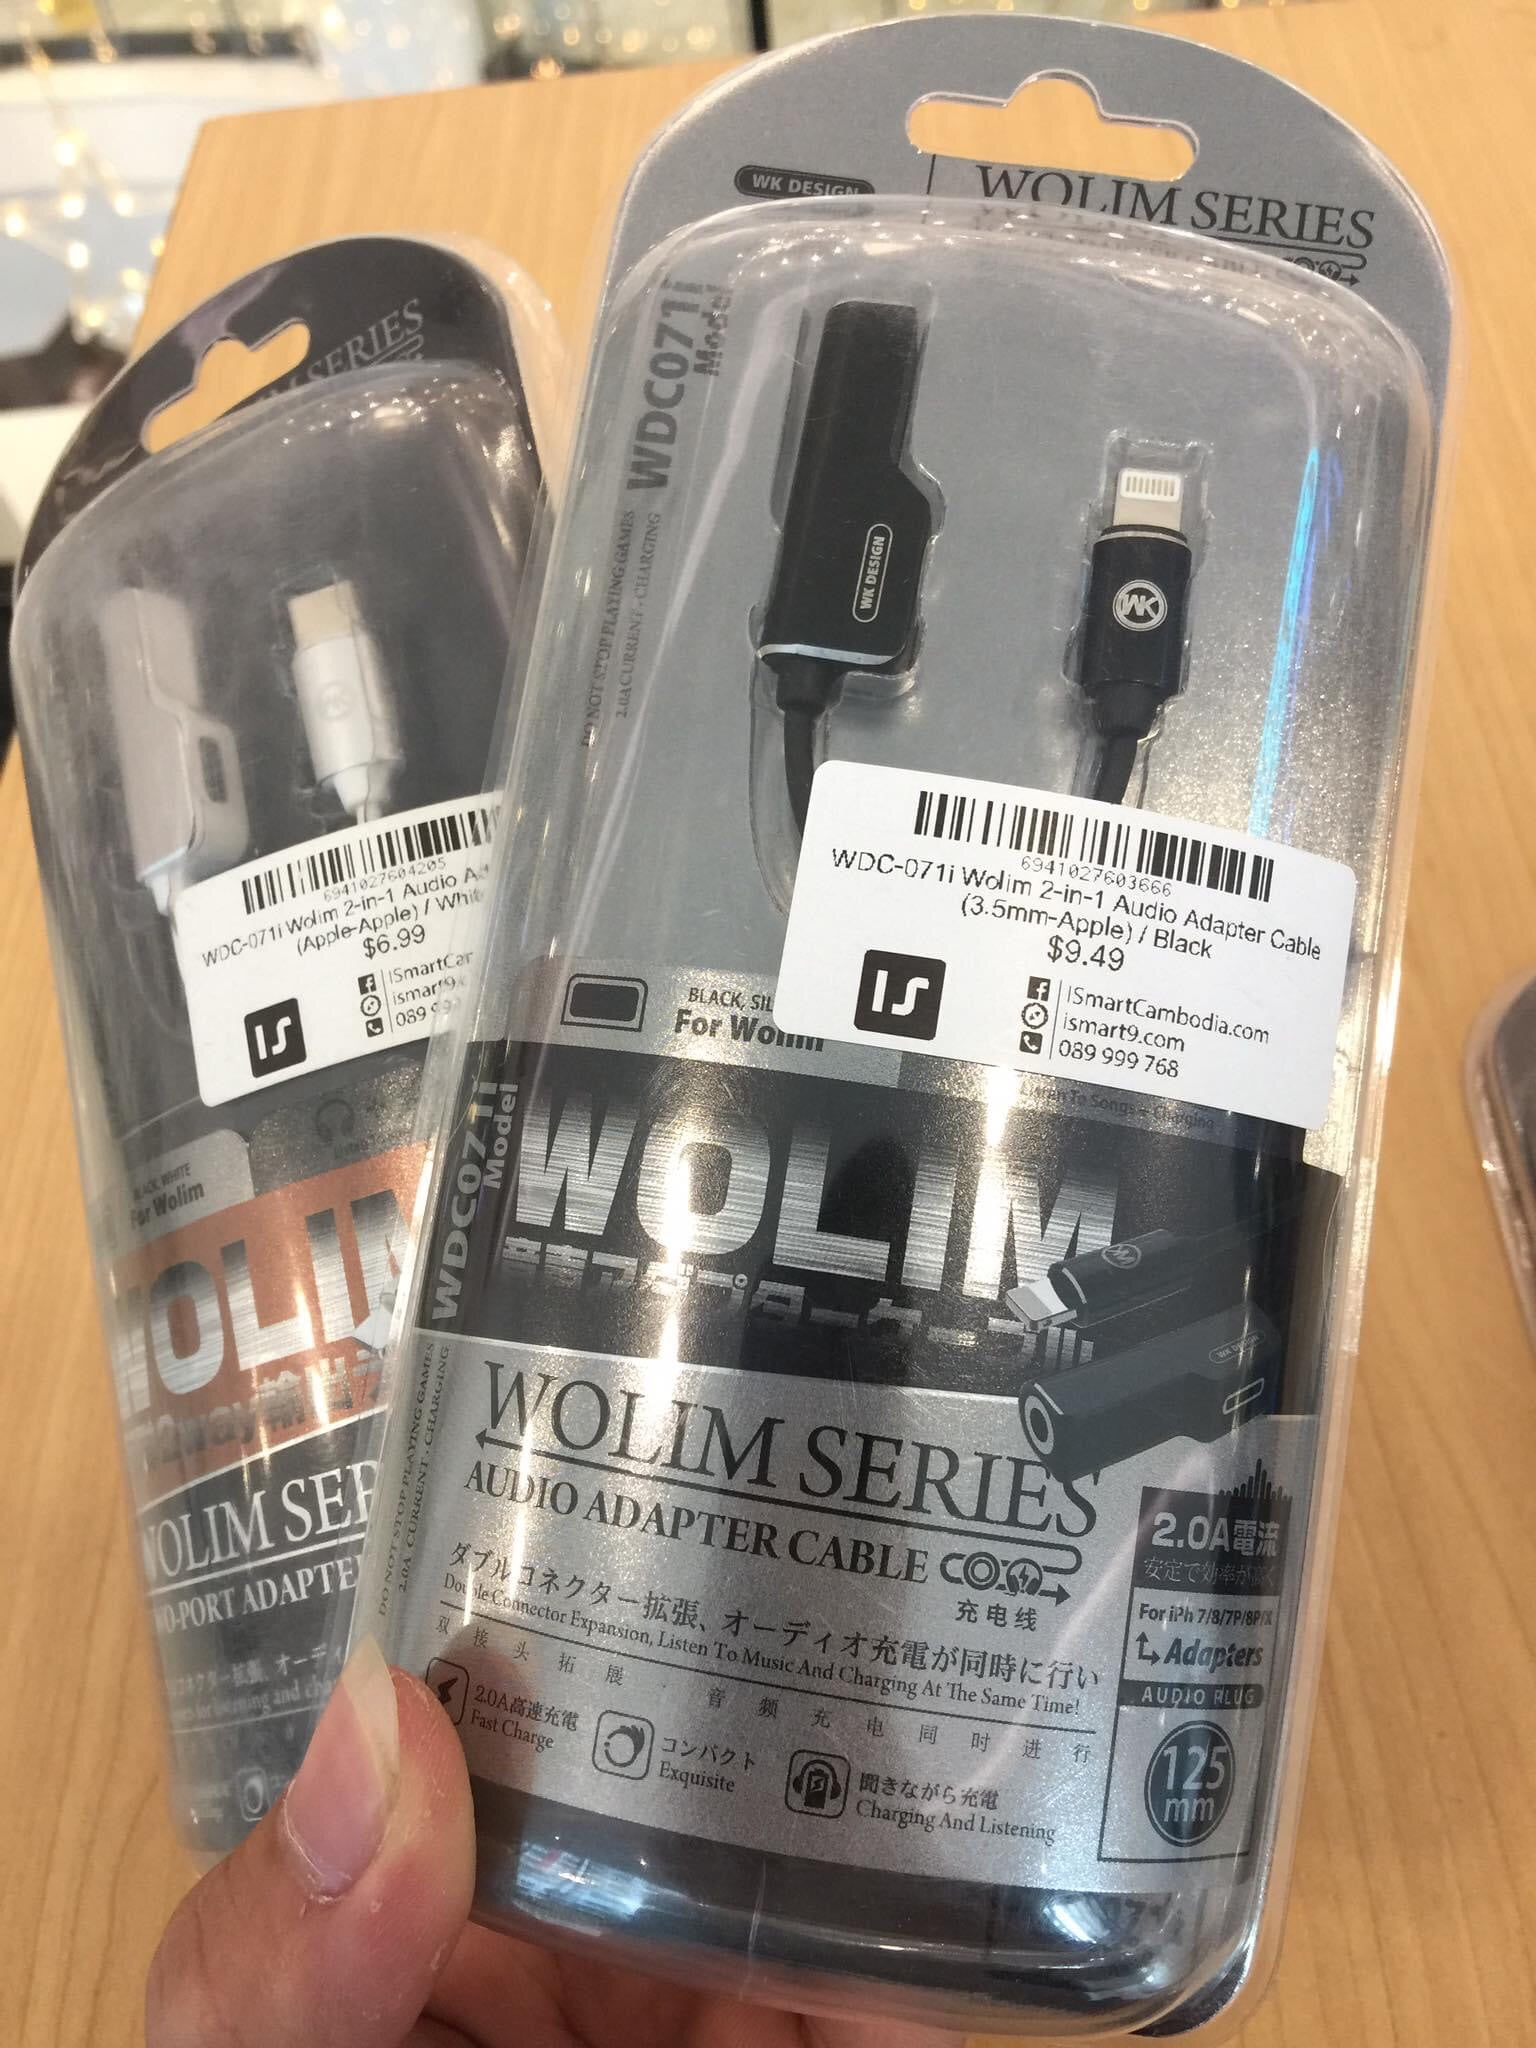 WDC-071a Wolim 2-in-1 Audio Adapter Cable  3.5mm-TypeC